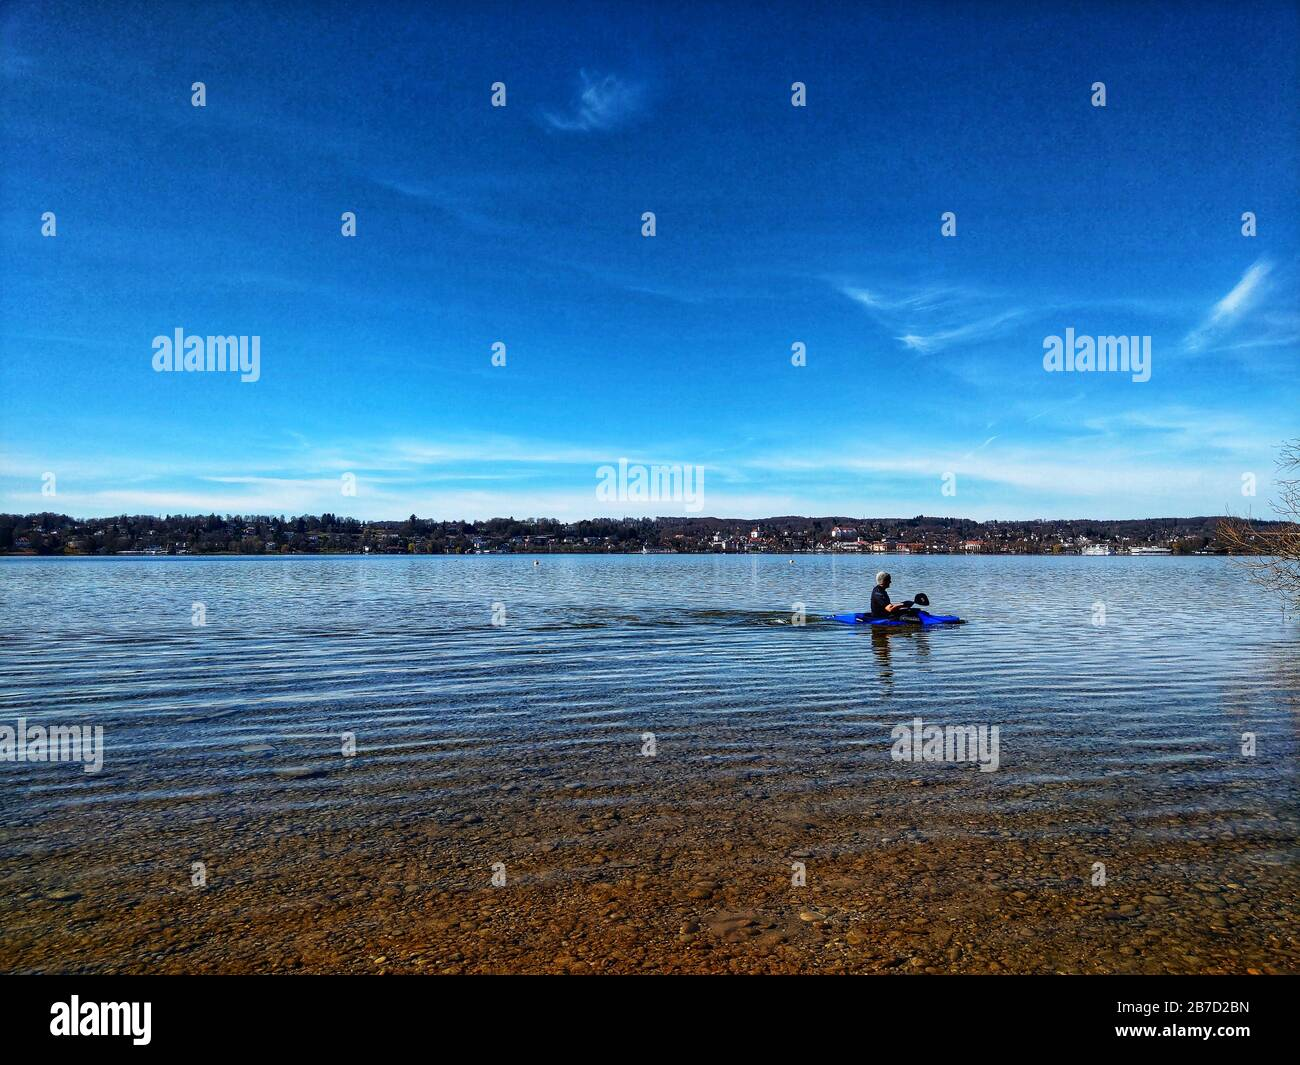 Starnberg, Bavaria, Germany. 15th Mar, 2020. A kayaker on Lake Starnberg near Munich, Germany practices social distancing and flatten the curve during the European Coronavirus outbreak and subsequent measures taken to control the spread. Credit: Sachelle Babbar/ZUMA Wire/Alamy Live News Stock Photo